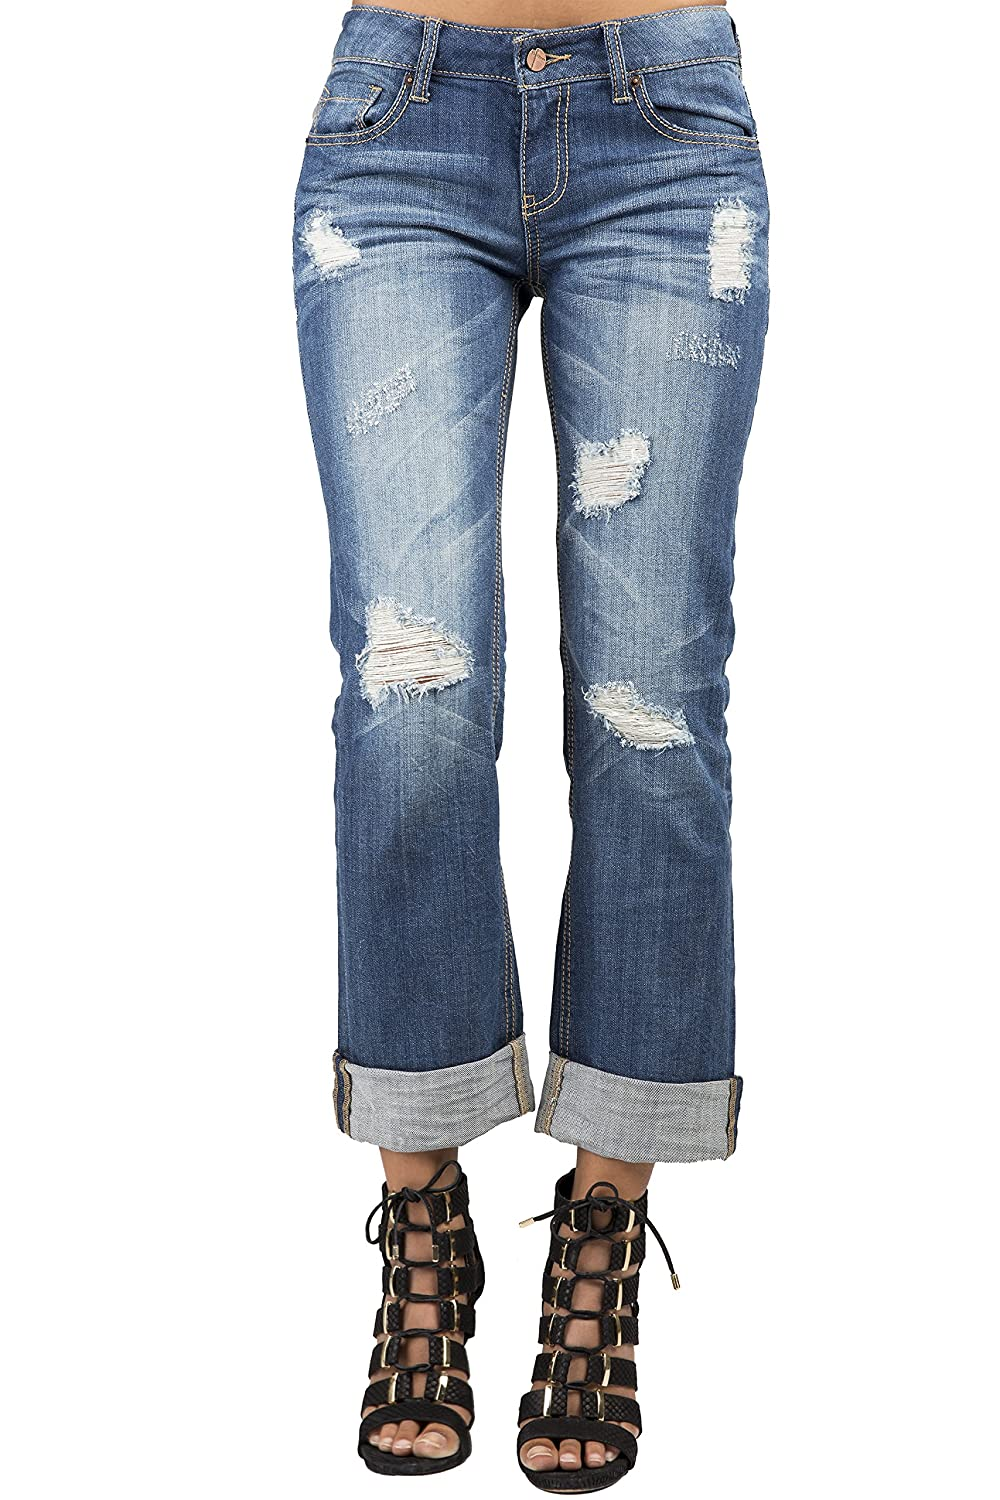 Standards & Practices Women's Light Blue Stretch Denim Destroyed Boyfriend Jeans